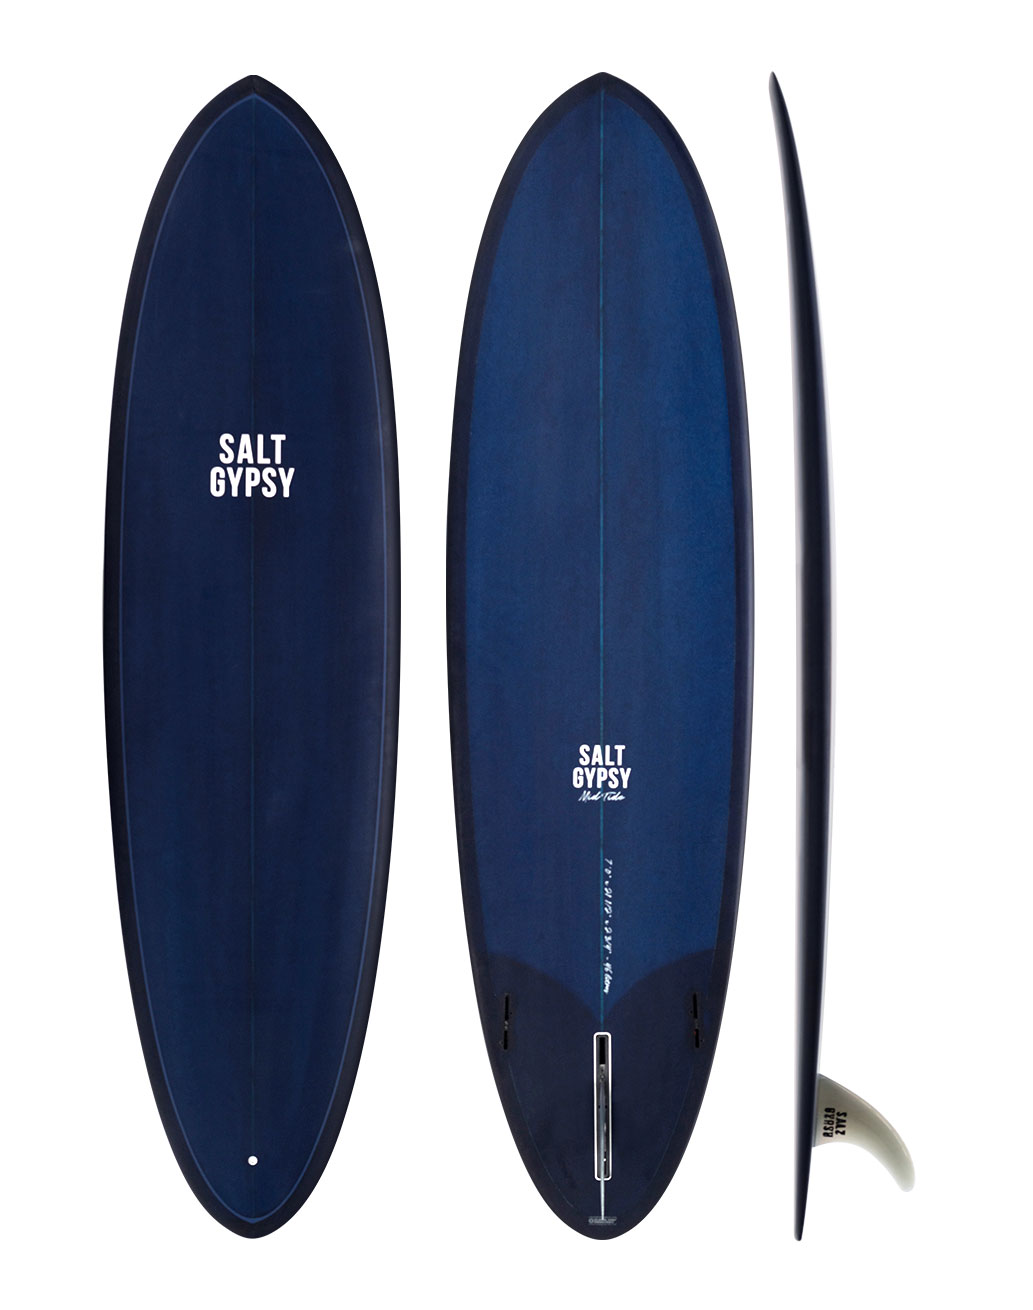 Salt Gypsy Mid Tide Surfboard